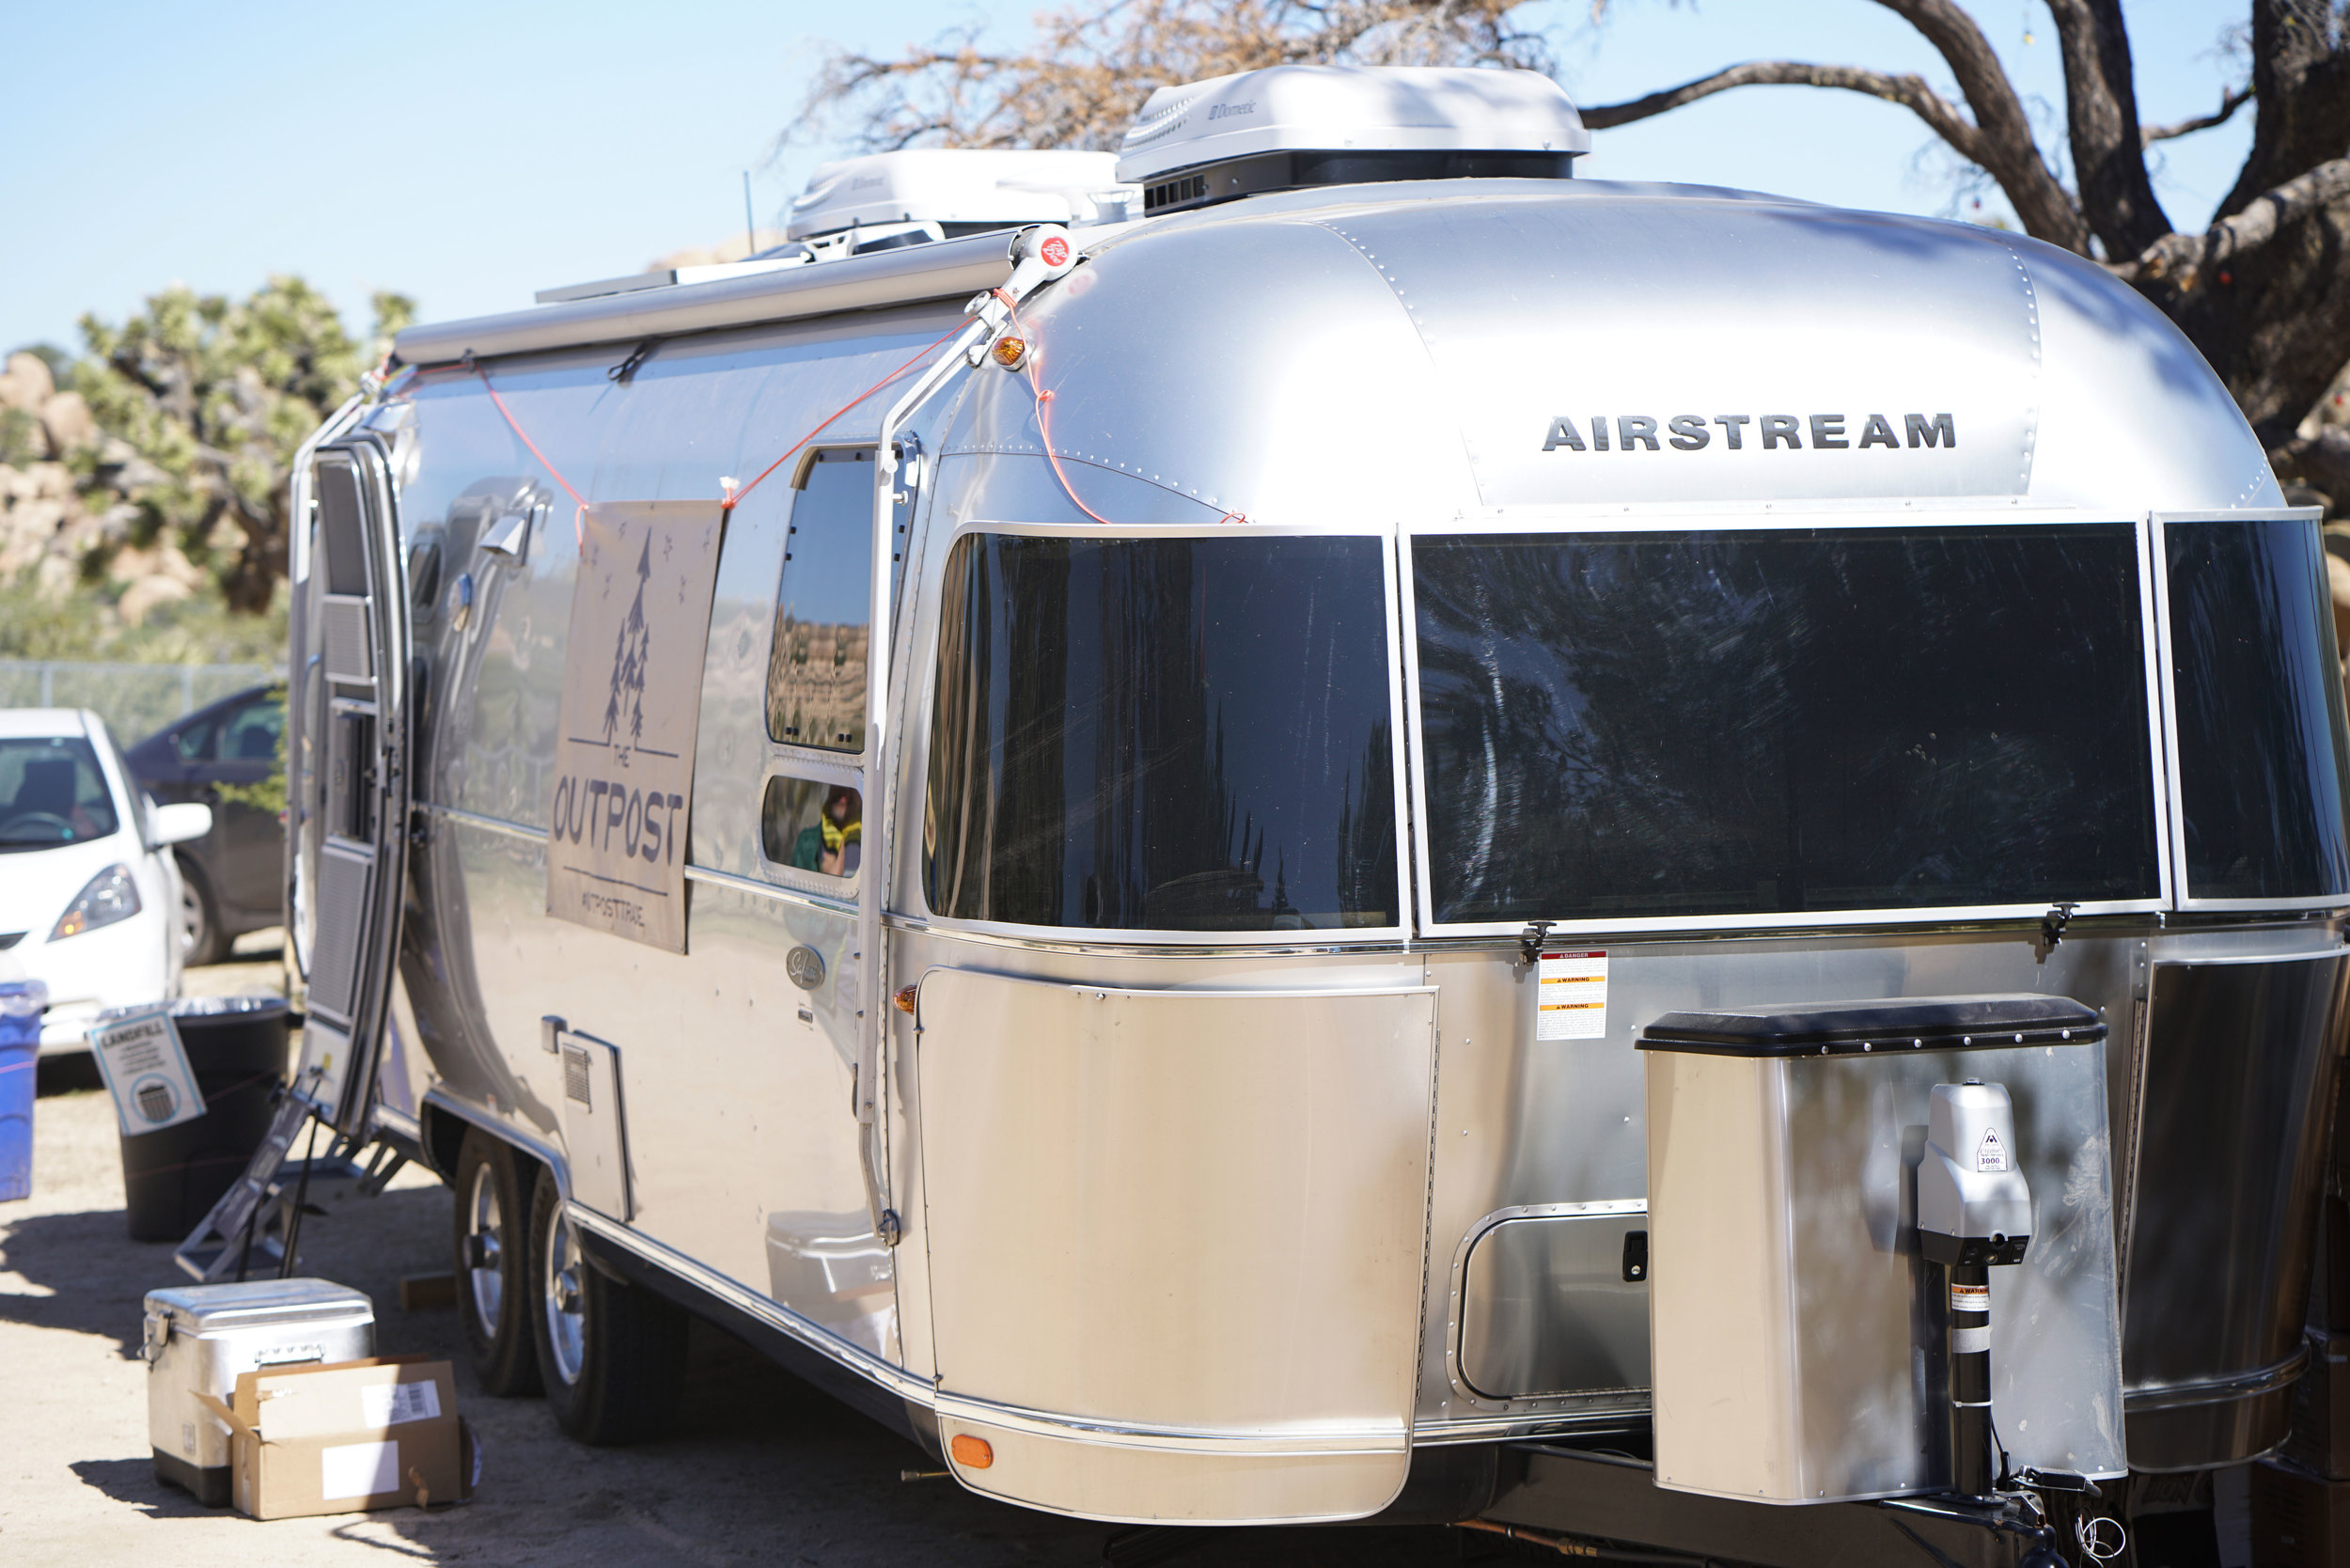 Home base courtesy of our friends at  Airstream !